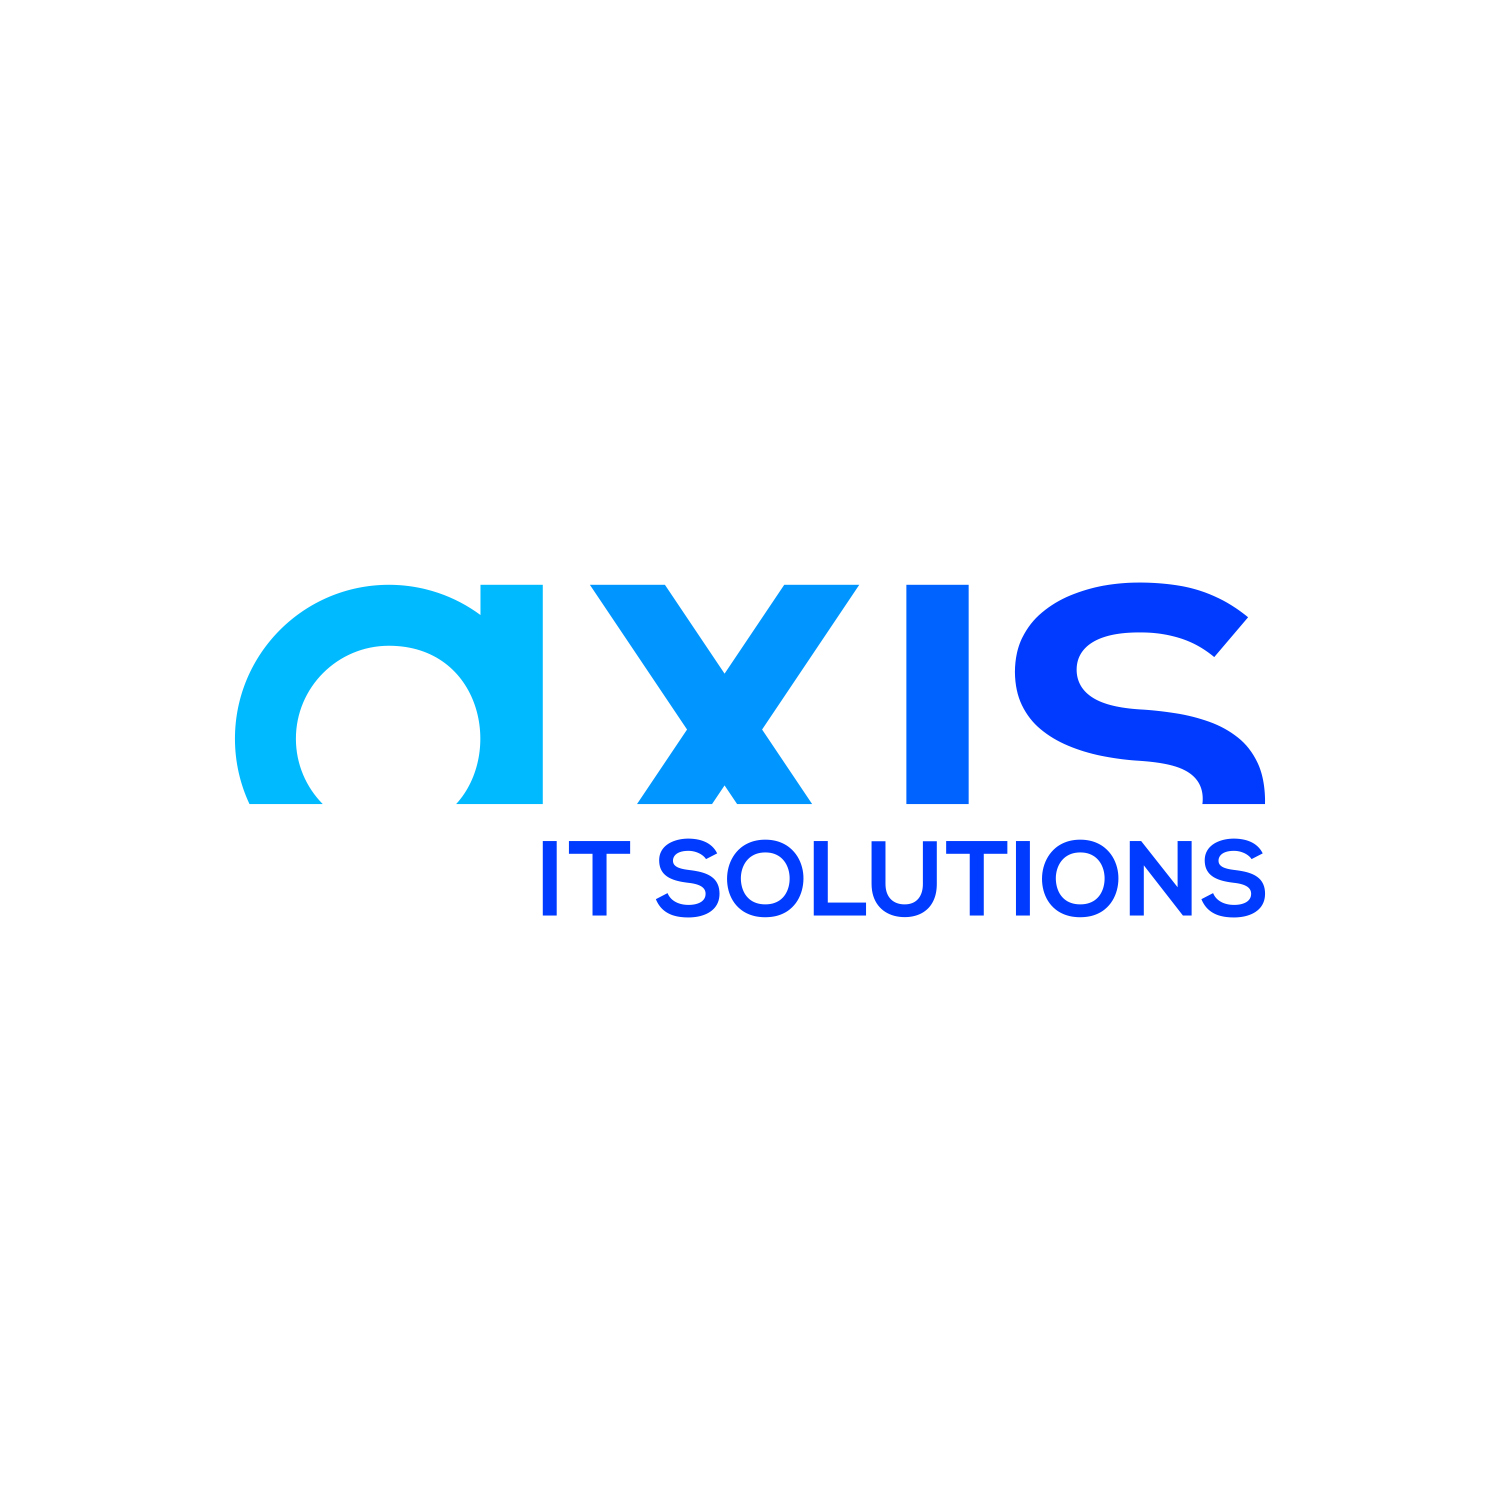 Axis IT Solutions